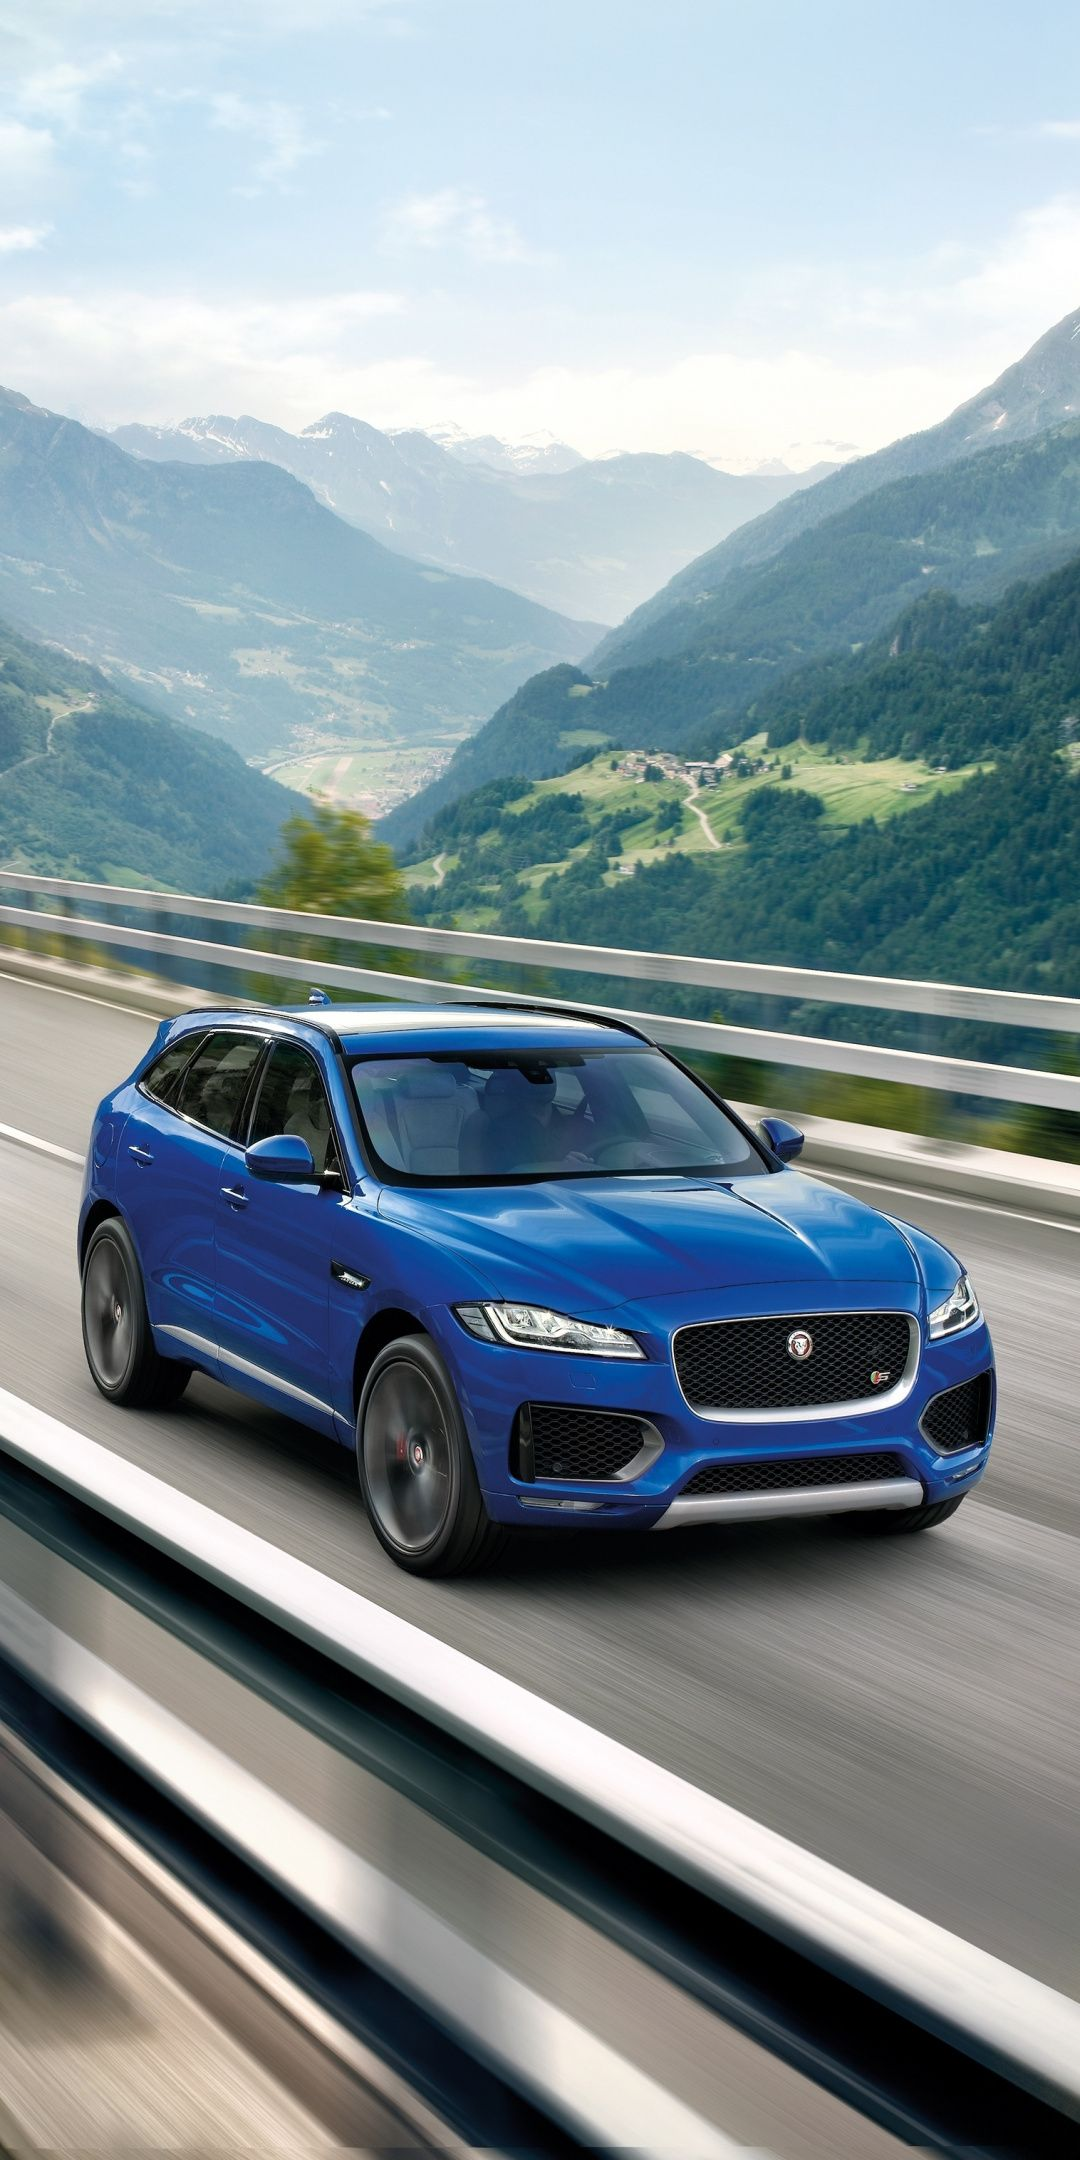 Jaguar F Pace Jaguar Luxury Car 1080x2160 Wallpaper Jaguar